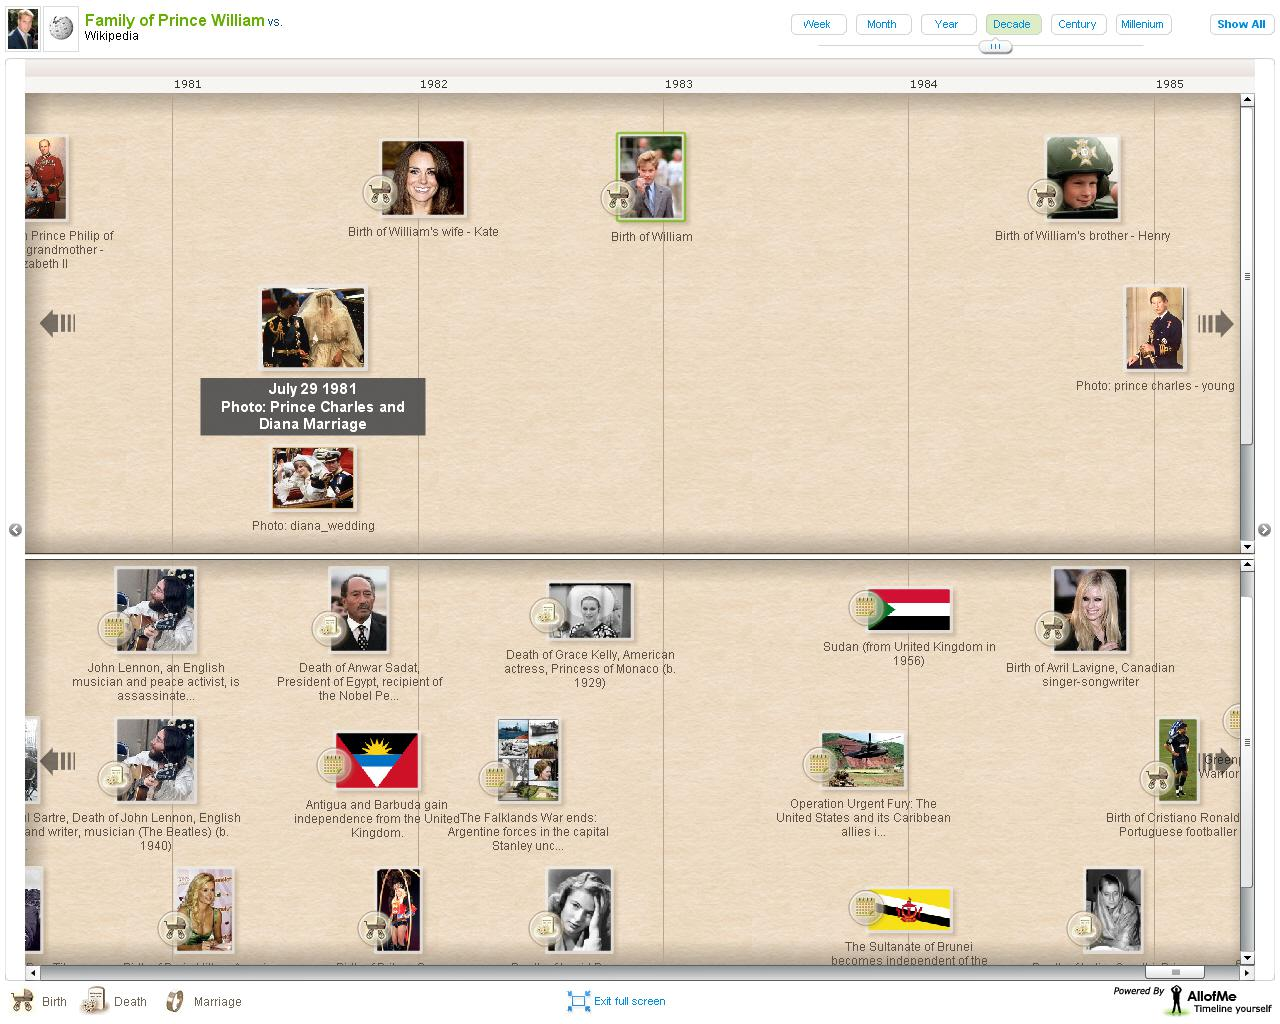 Timeline of Prince William compared to world events, shown in full-screen view (click to enlarge)